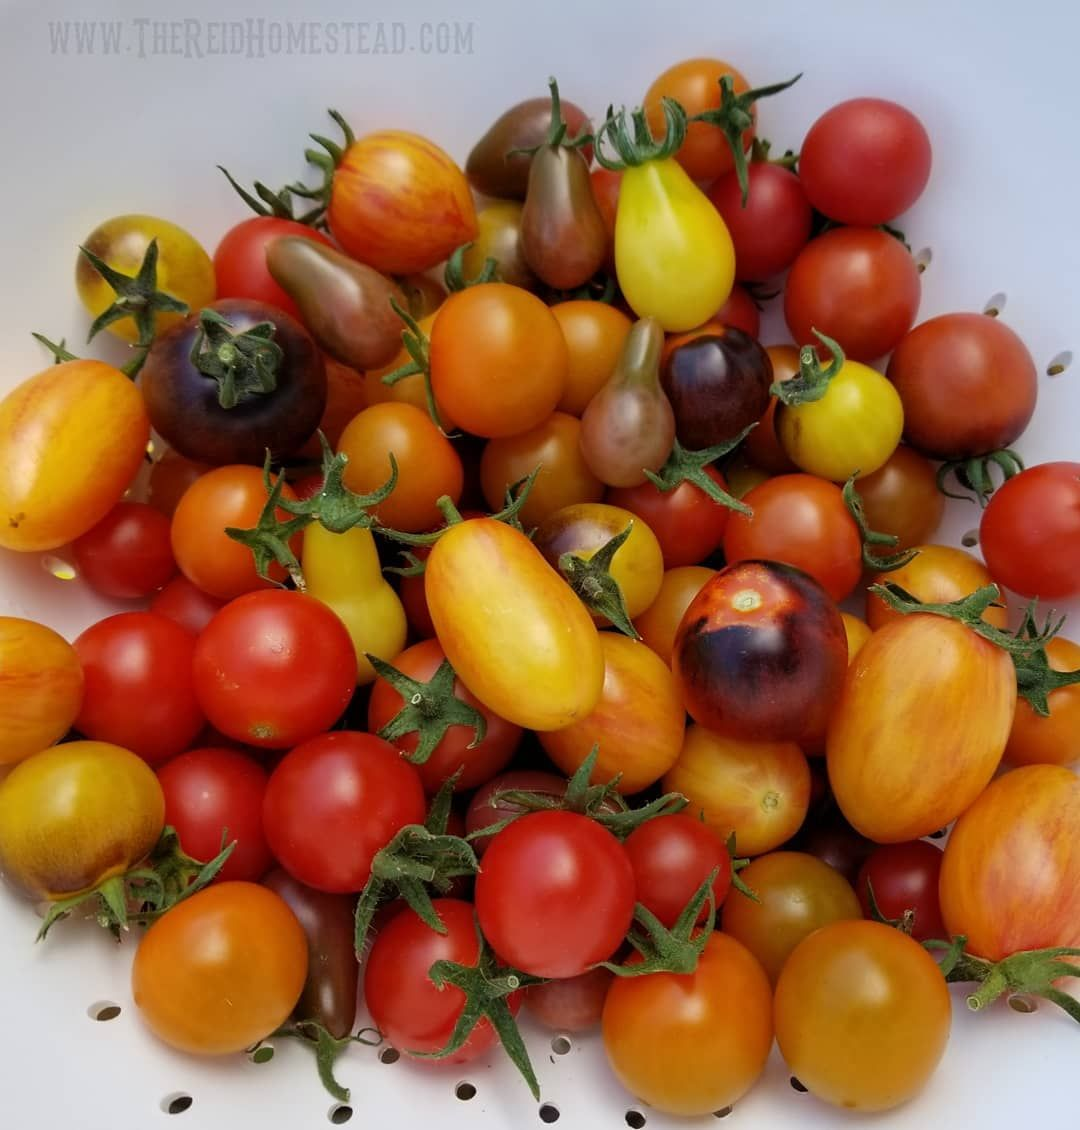 The cherry tomatoes are coming on strong now! Love the colors in this years varieties!